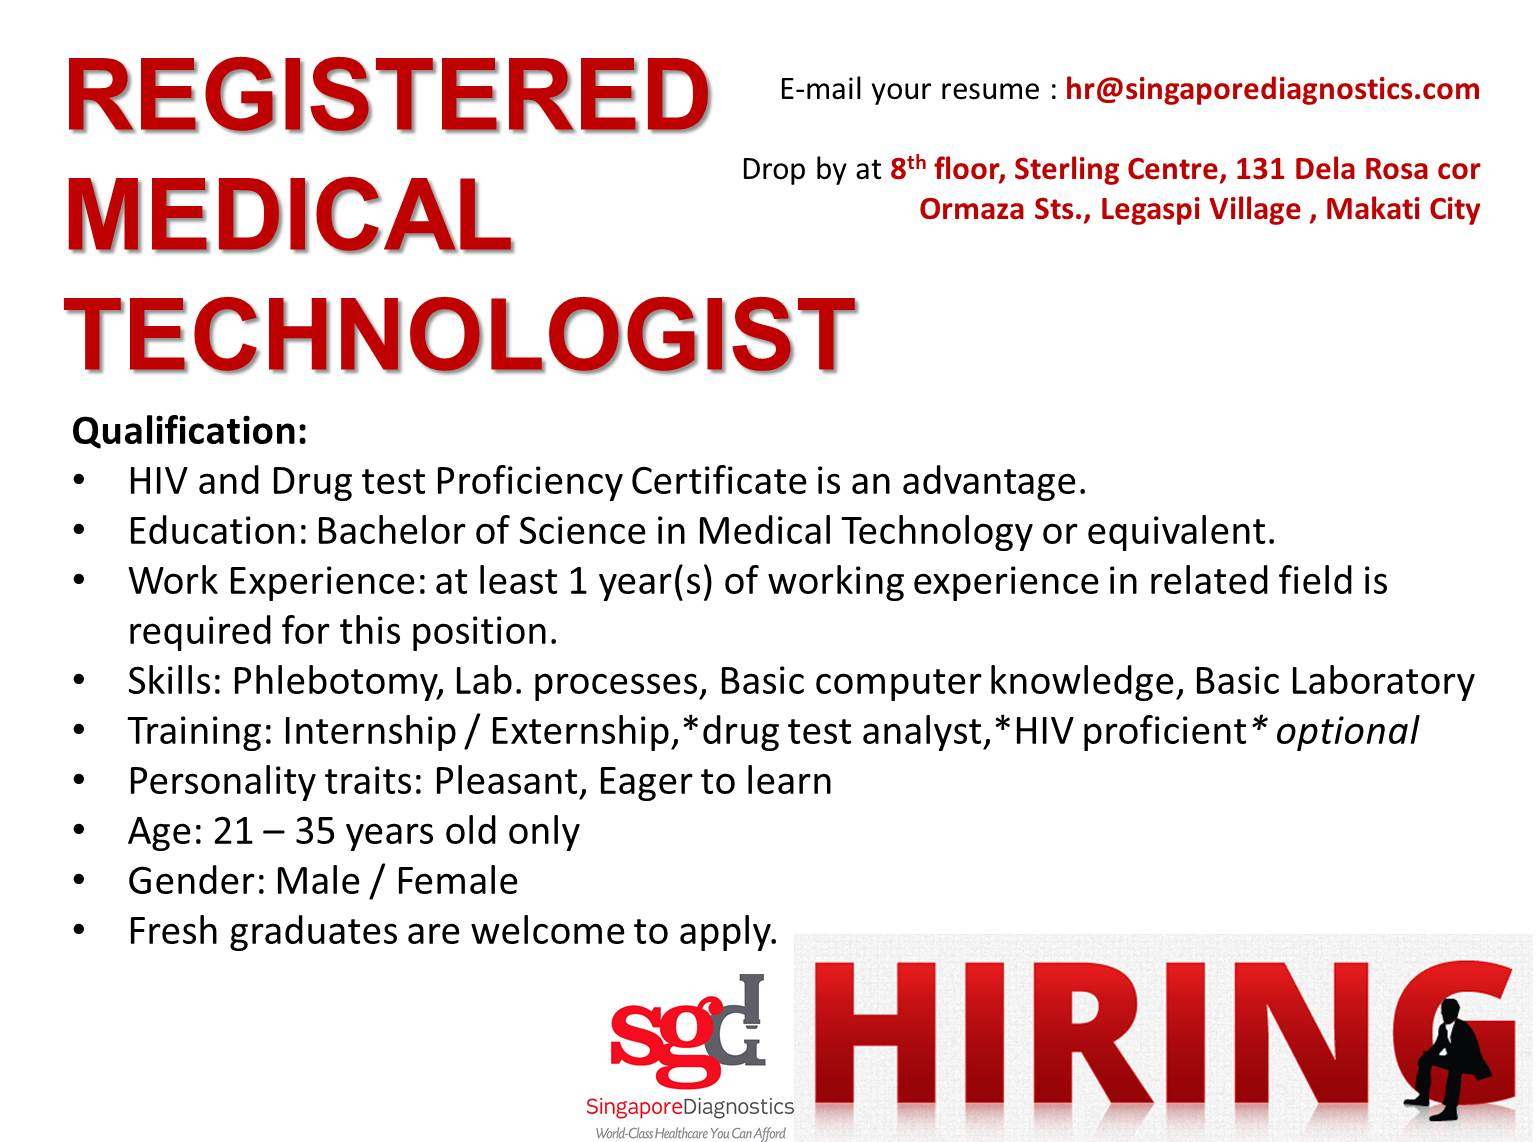 Registered Medical Technologist